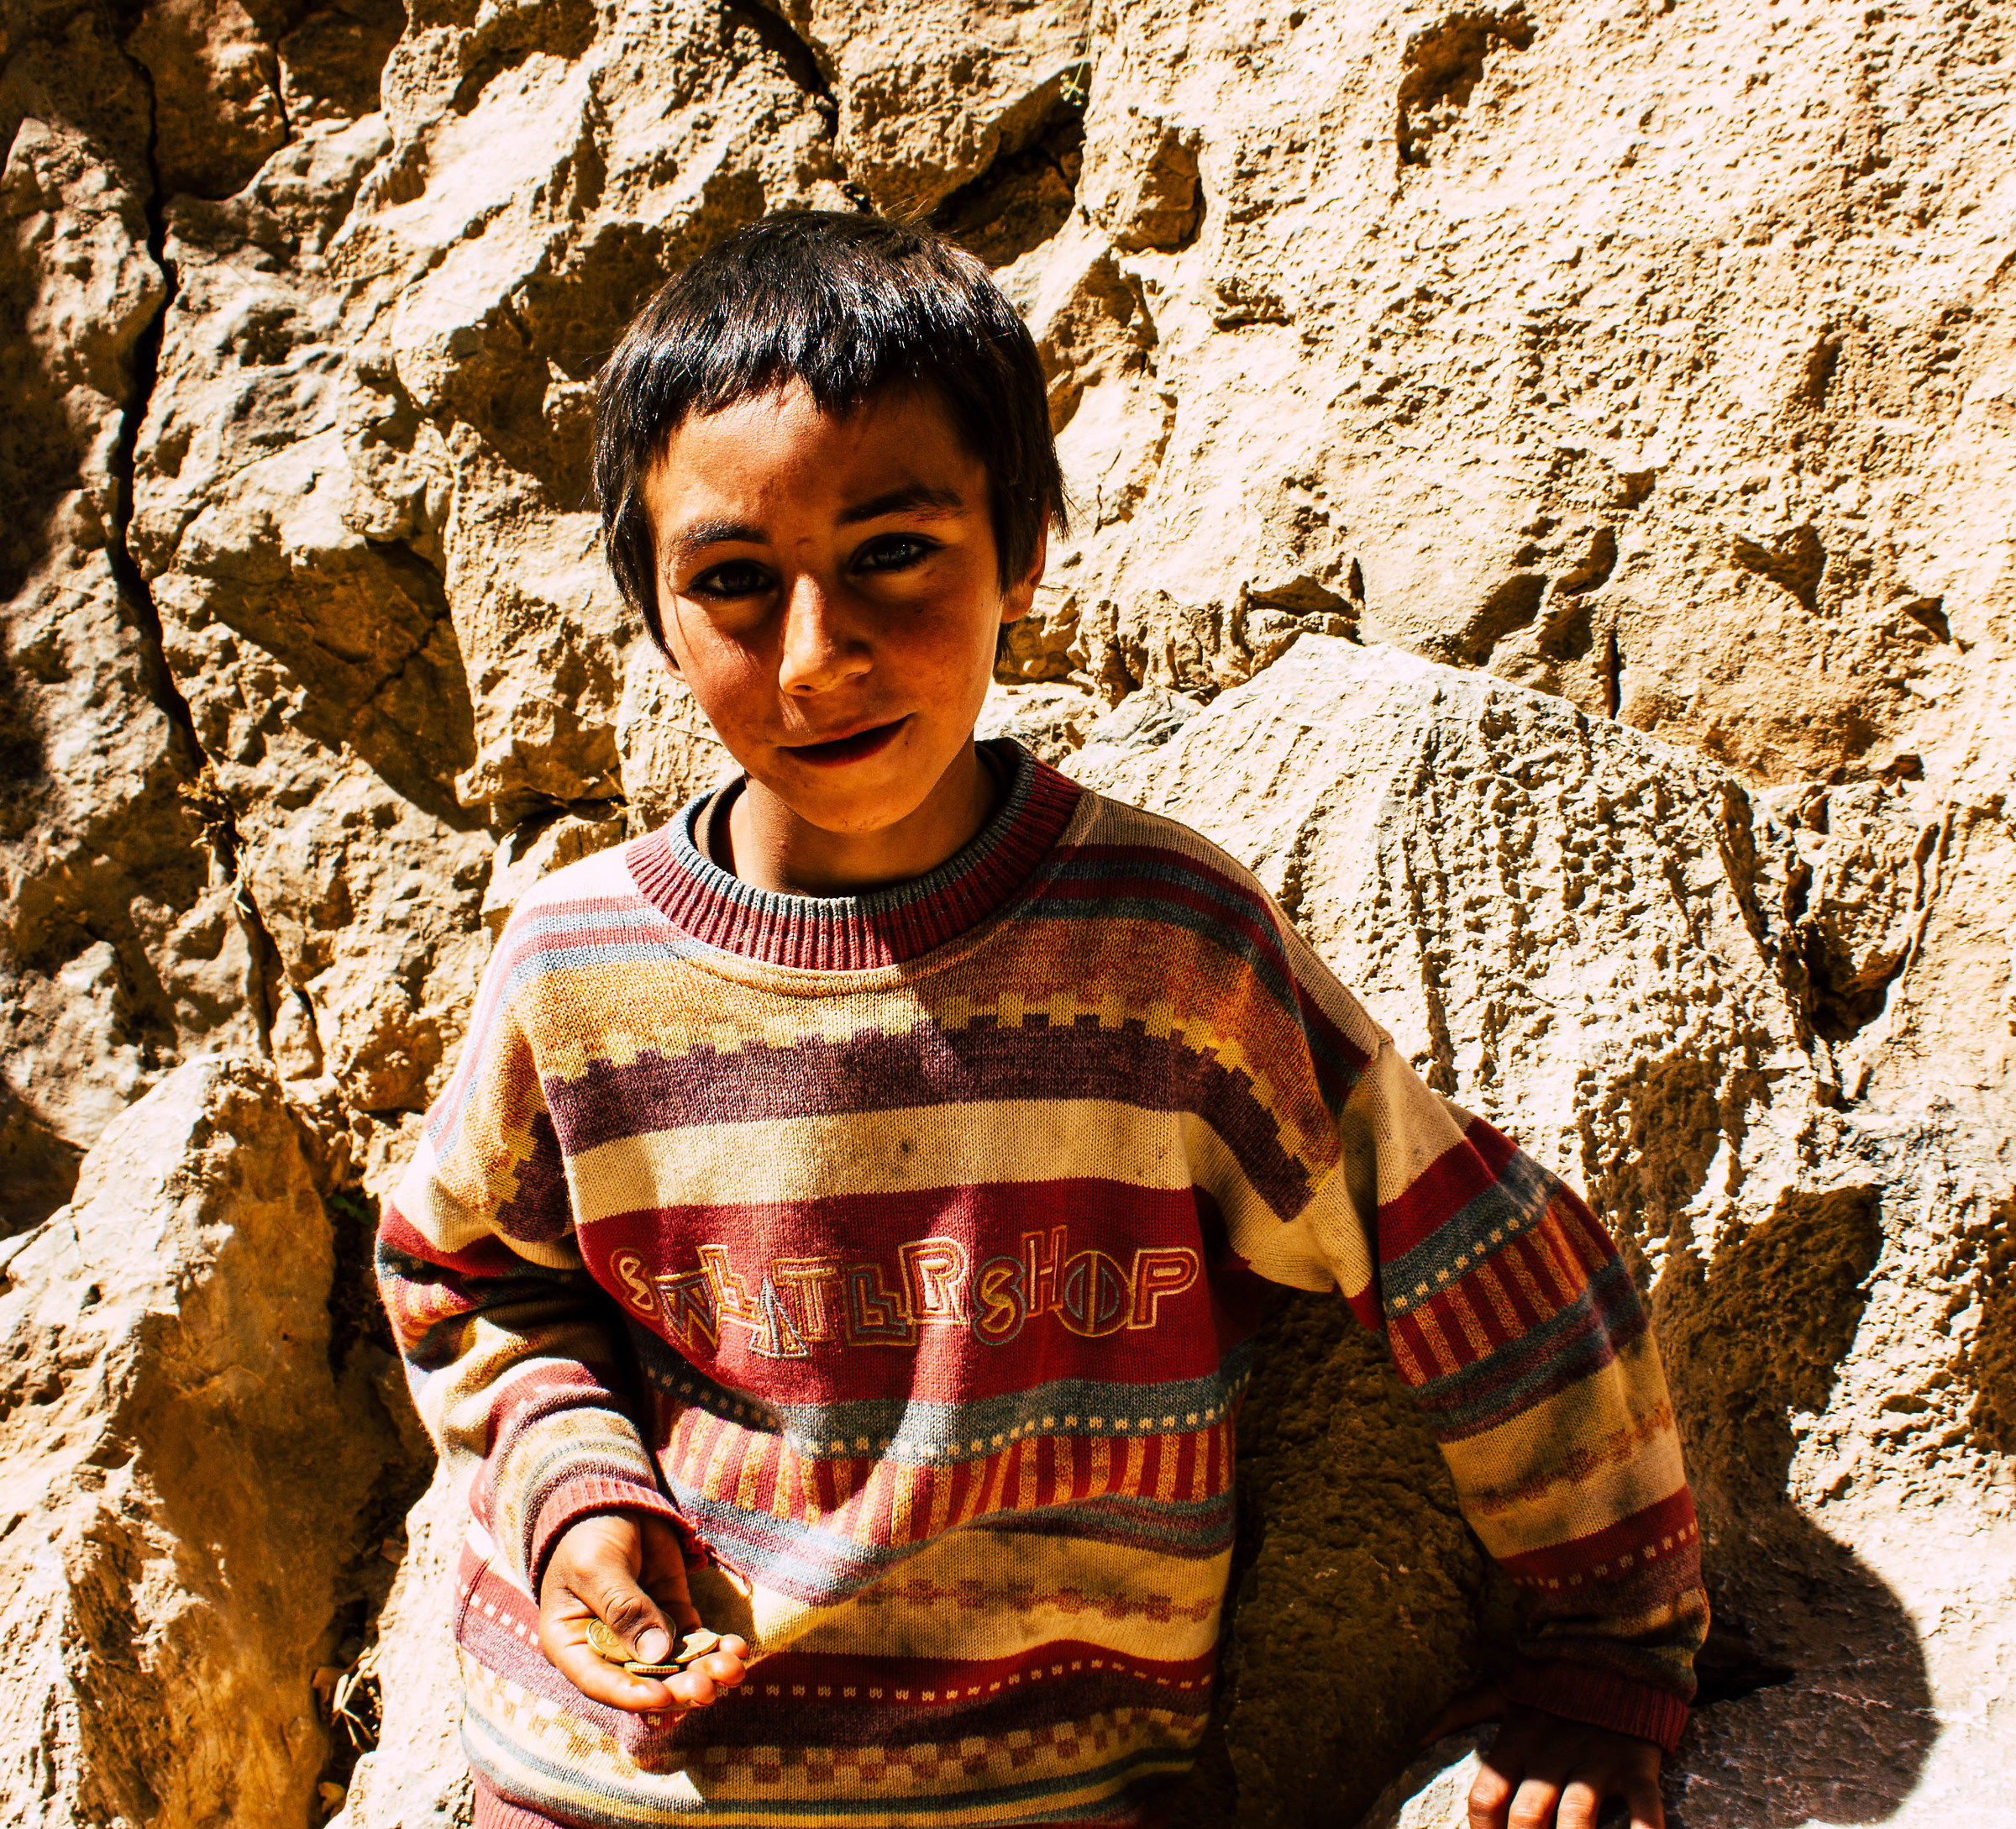 Berber child at Dades Gorge...